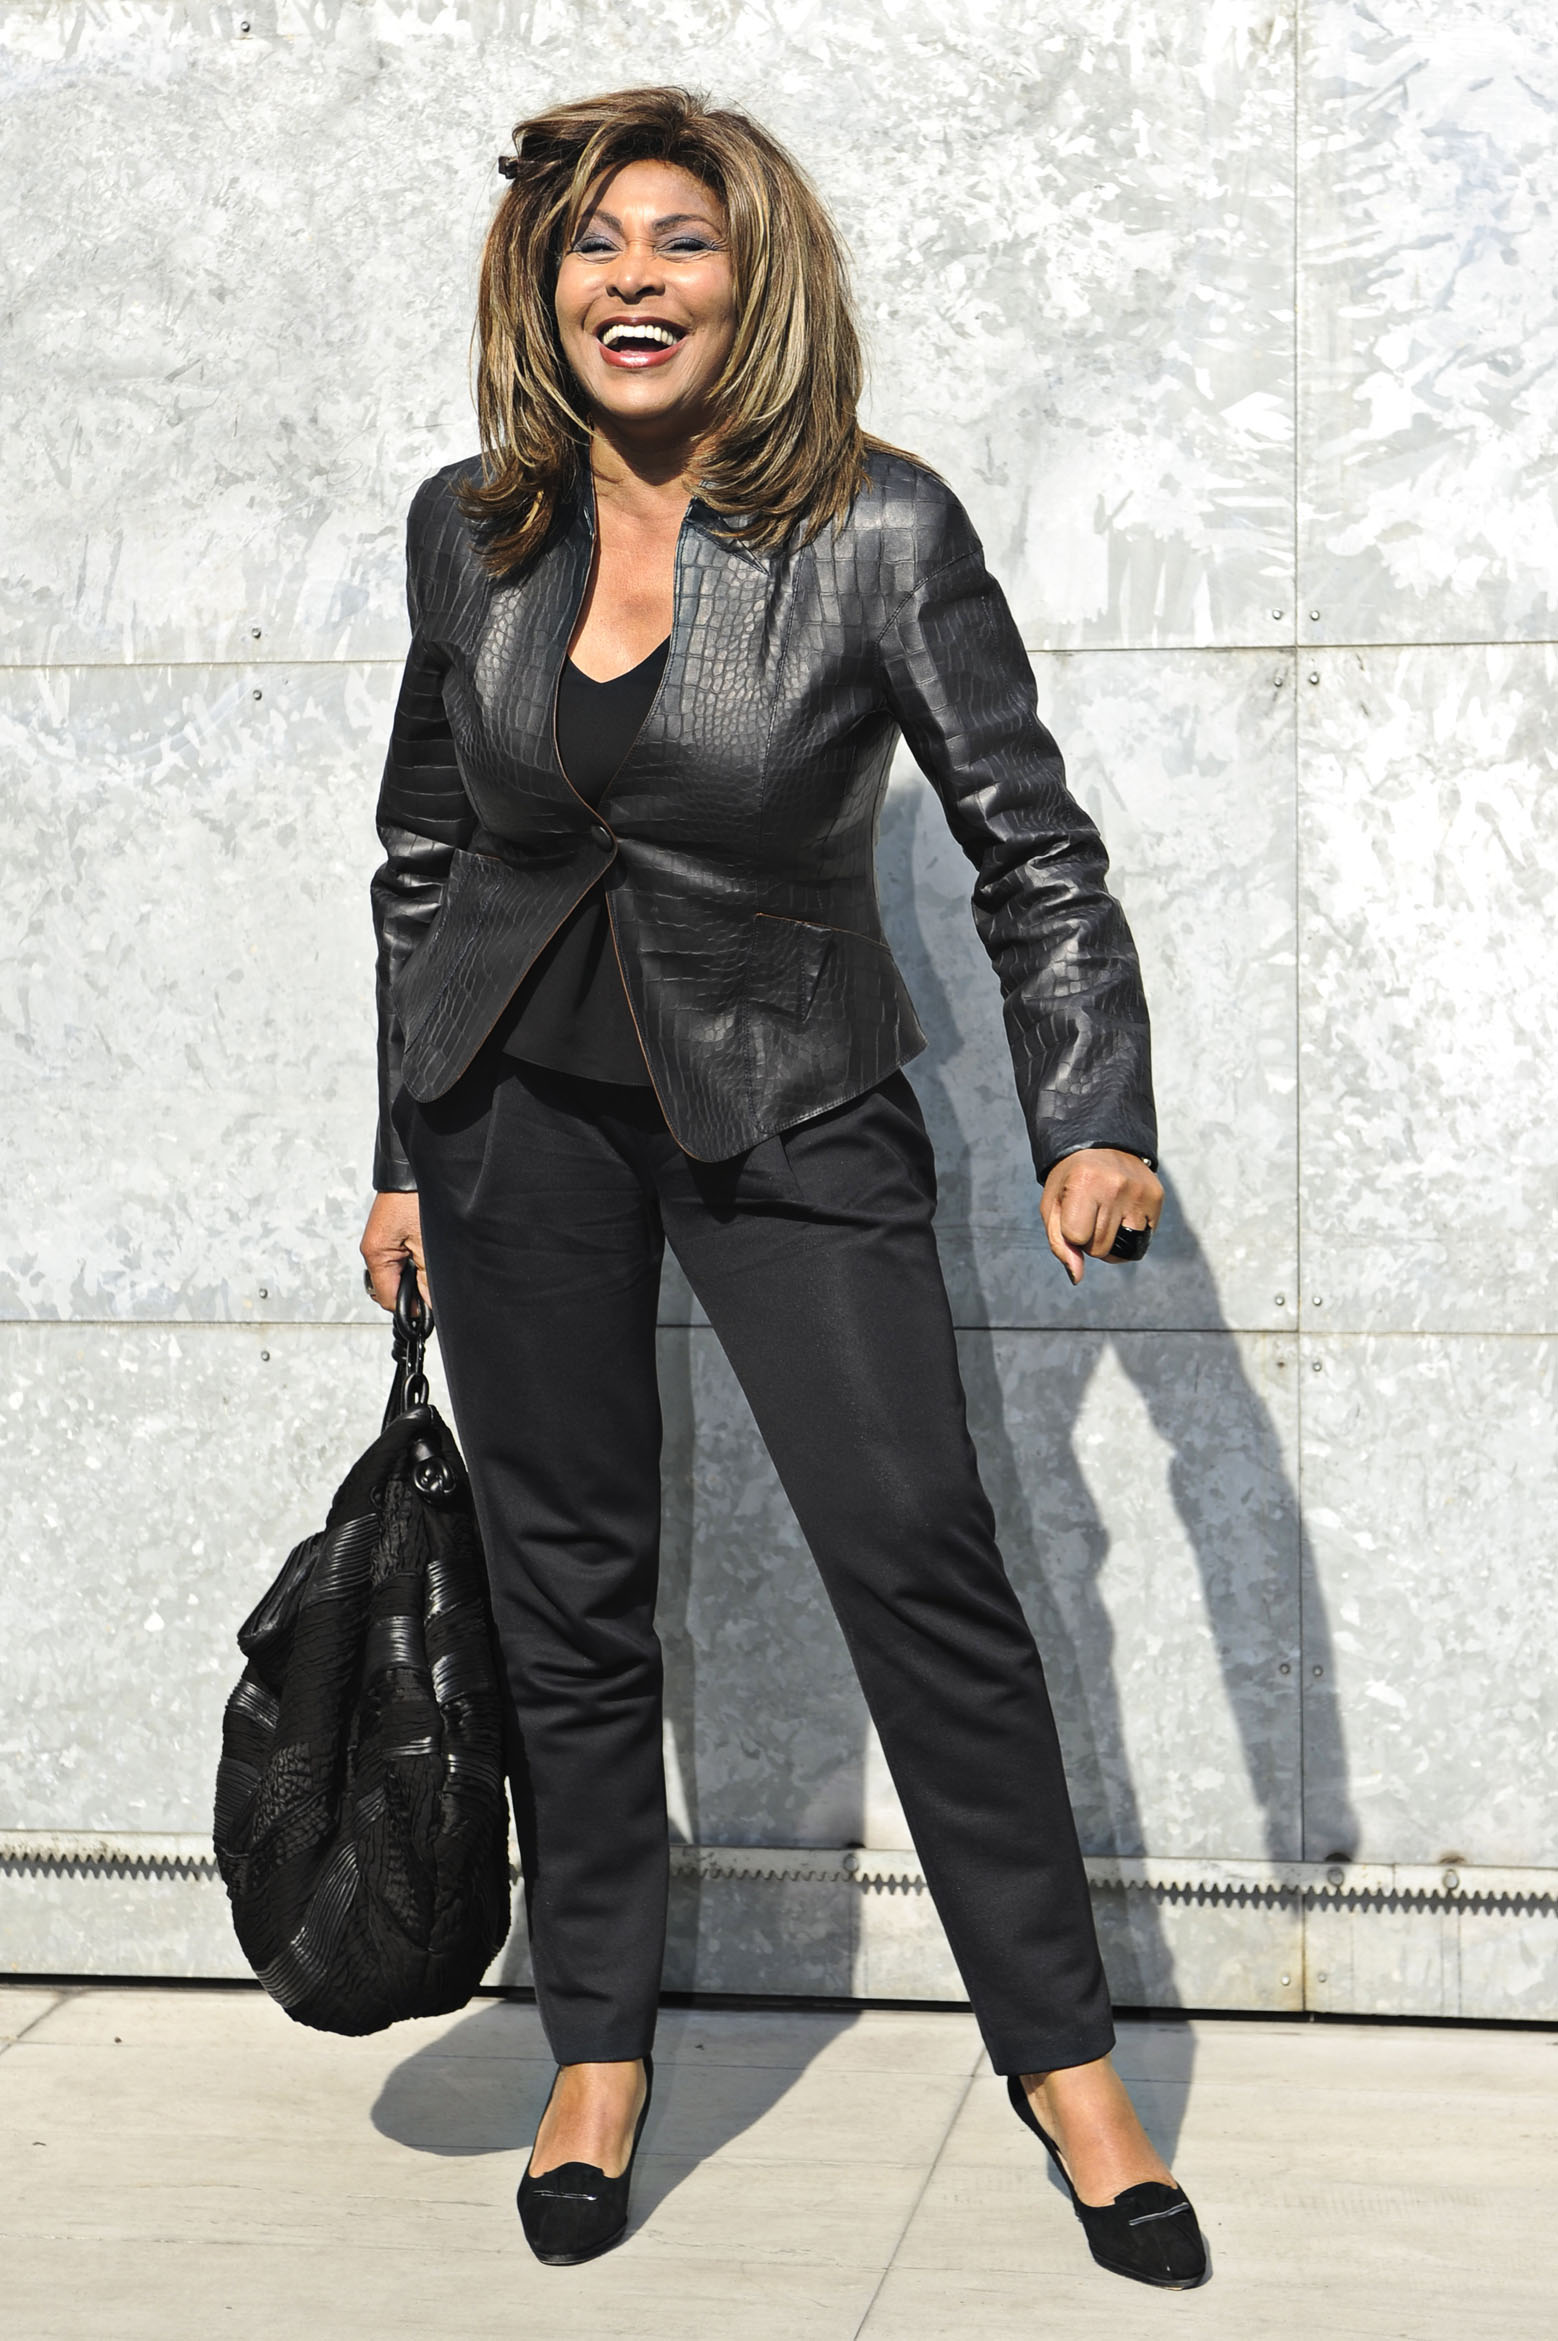 http://tinaturnerblog.files.wordpress.com/2011/02/tina-turner-emporio-armani-fashion-show-milan-italy-february-26-2011-2.jpg